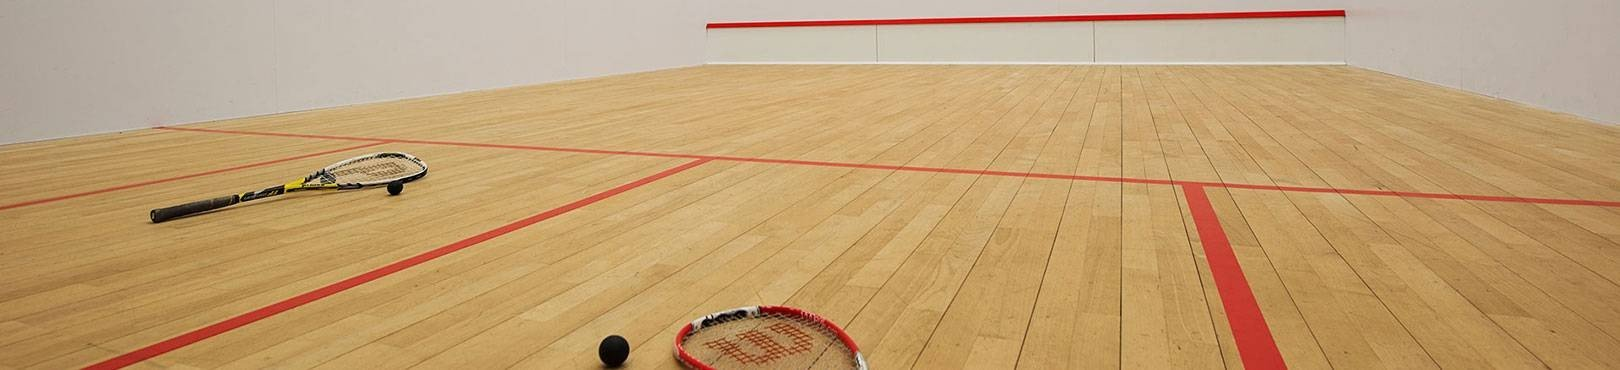 <h4><a href='/en/attractions/squash' >Squash</a></h4><div class='item-intro'>This is a sport for efficient, nimble and tenacious people. Since the end of the 1990s, it has been gaining more and more popularity in Poland. There are those who claim that today it is unbecoming not to play squash. We cannot even imagine that a full-size...</div><div class='item-link'><a class='btn-portal' href='/en/attractions/squash' >Read more</a></div>